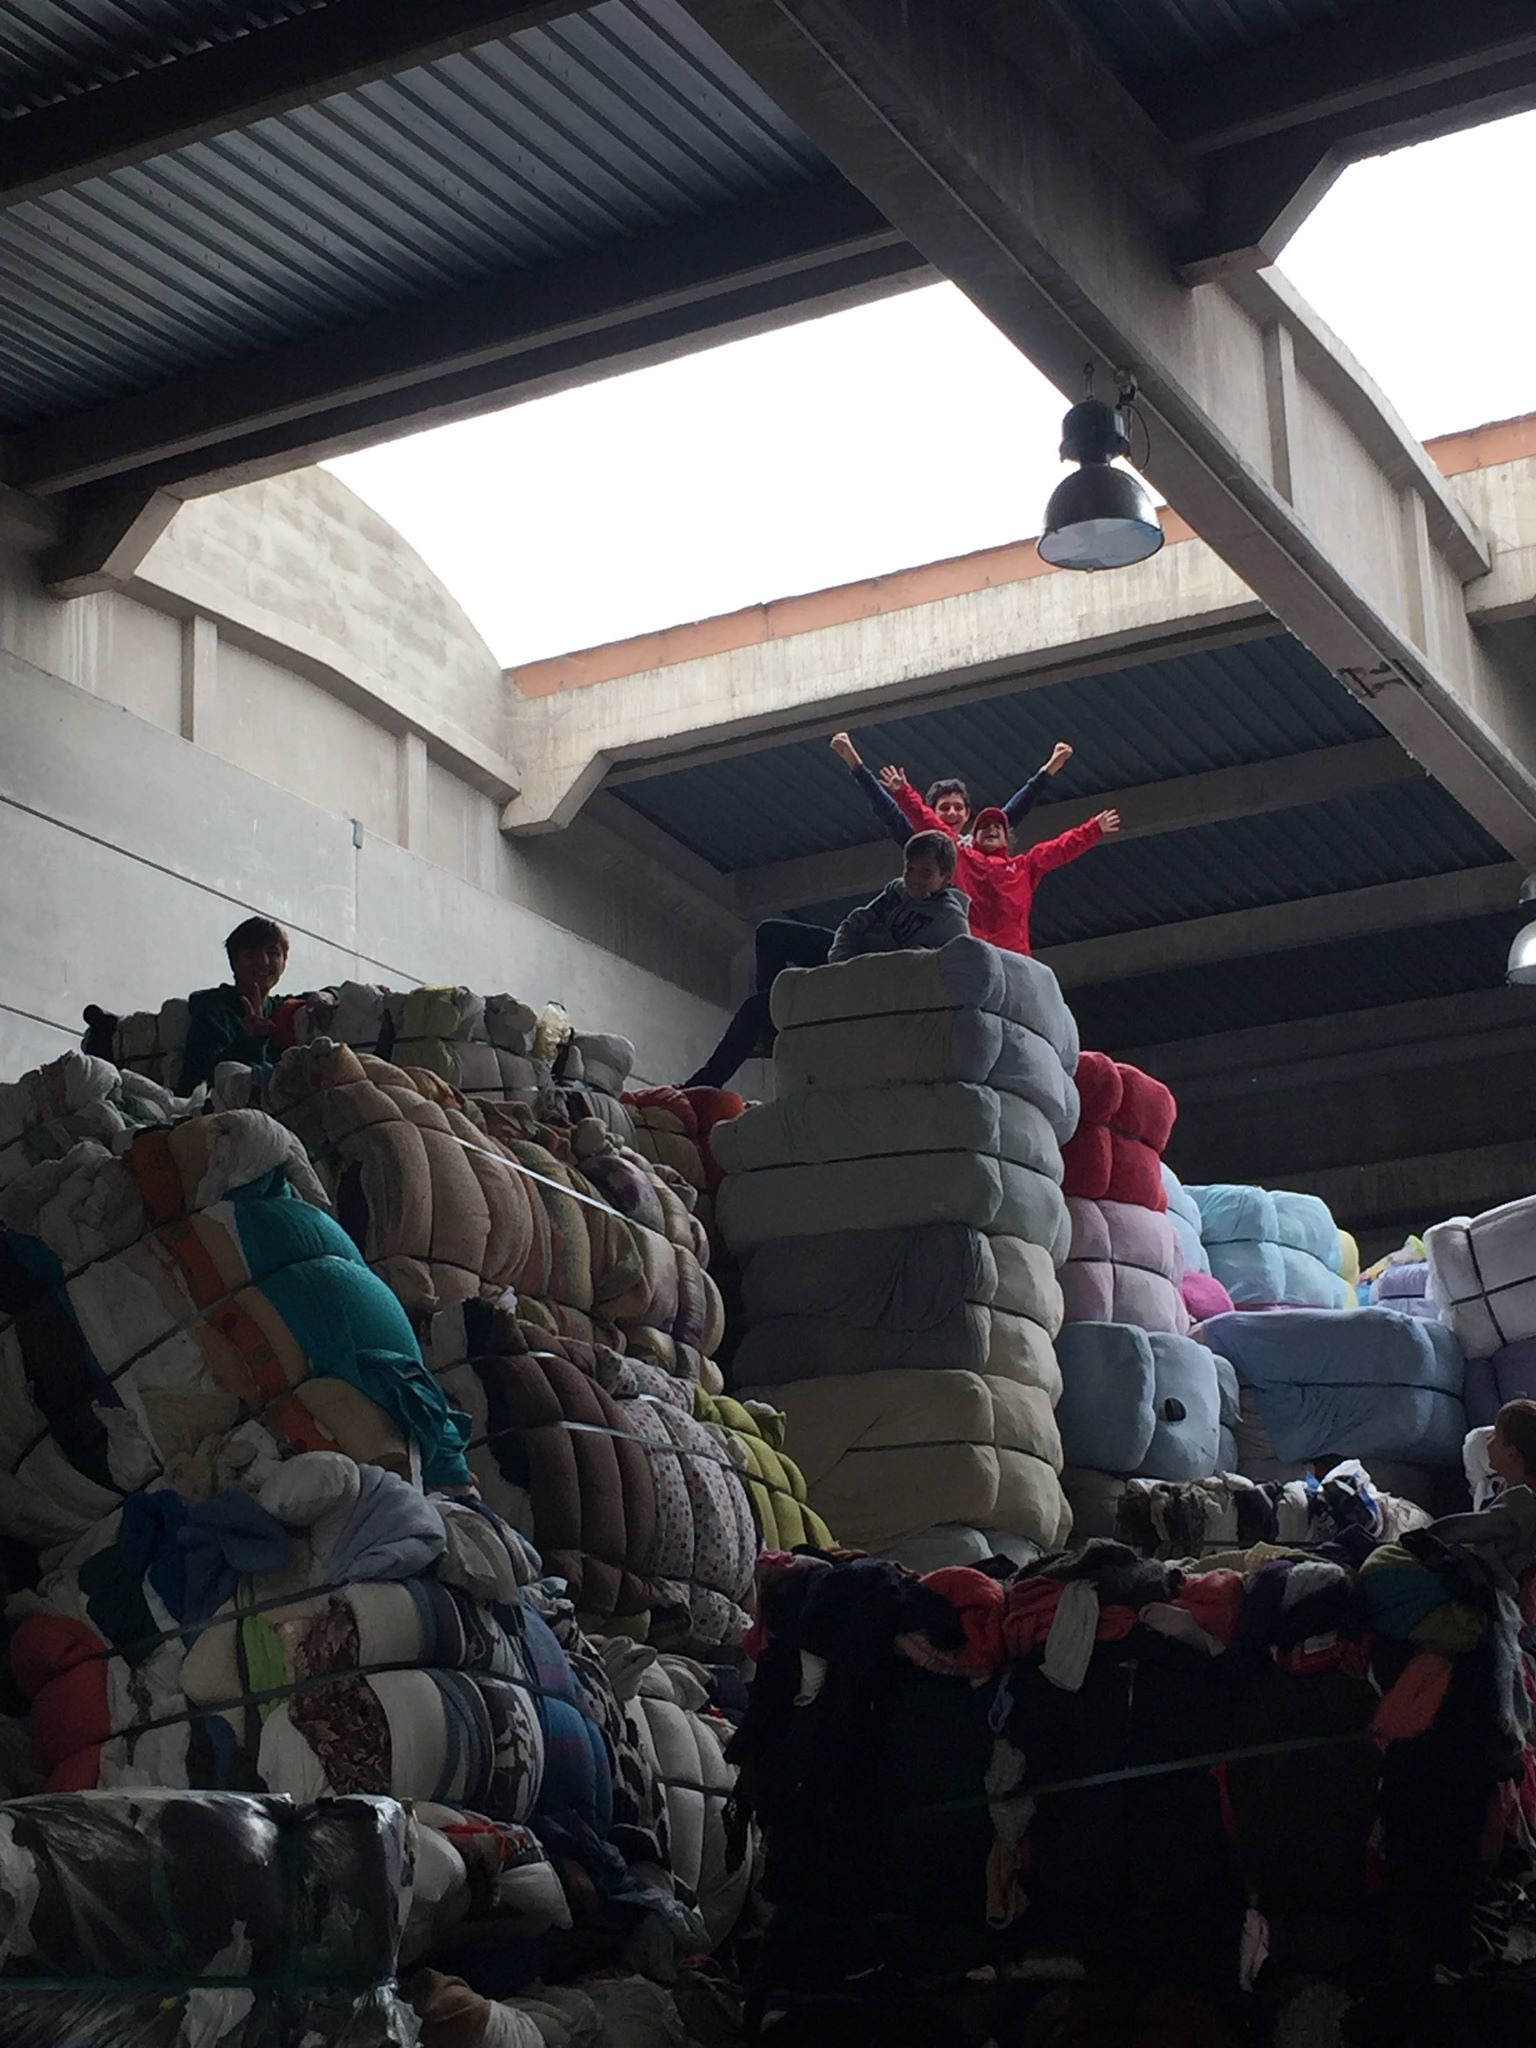 SB OverSeas and PwC together to send '25 Tonnes of Hope' to Lebanon